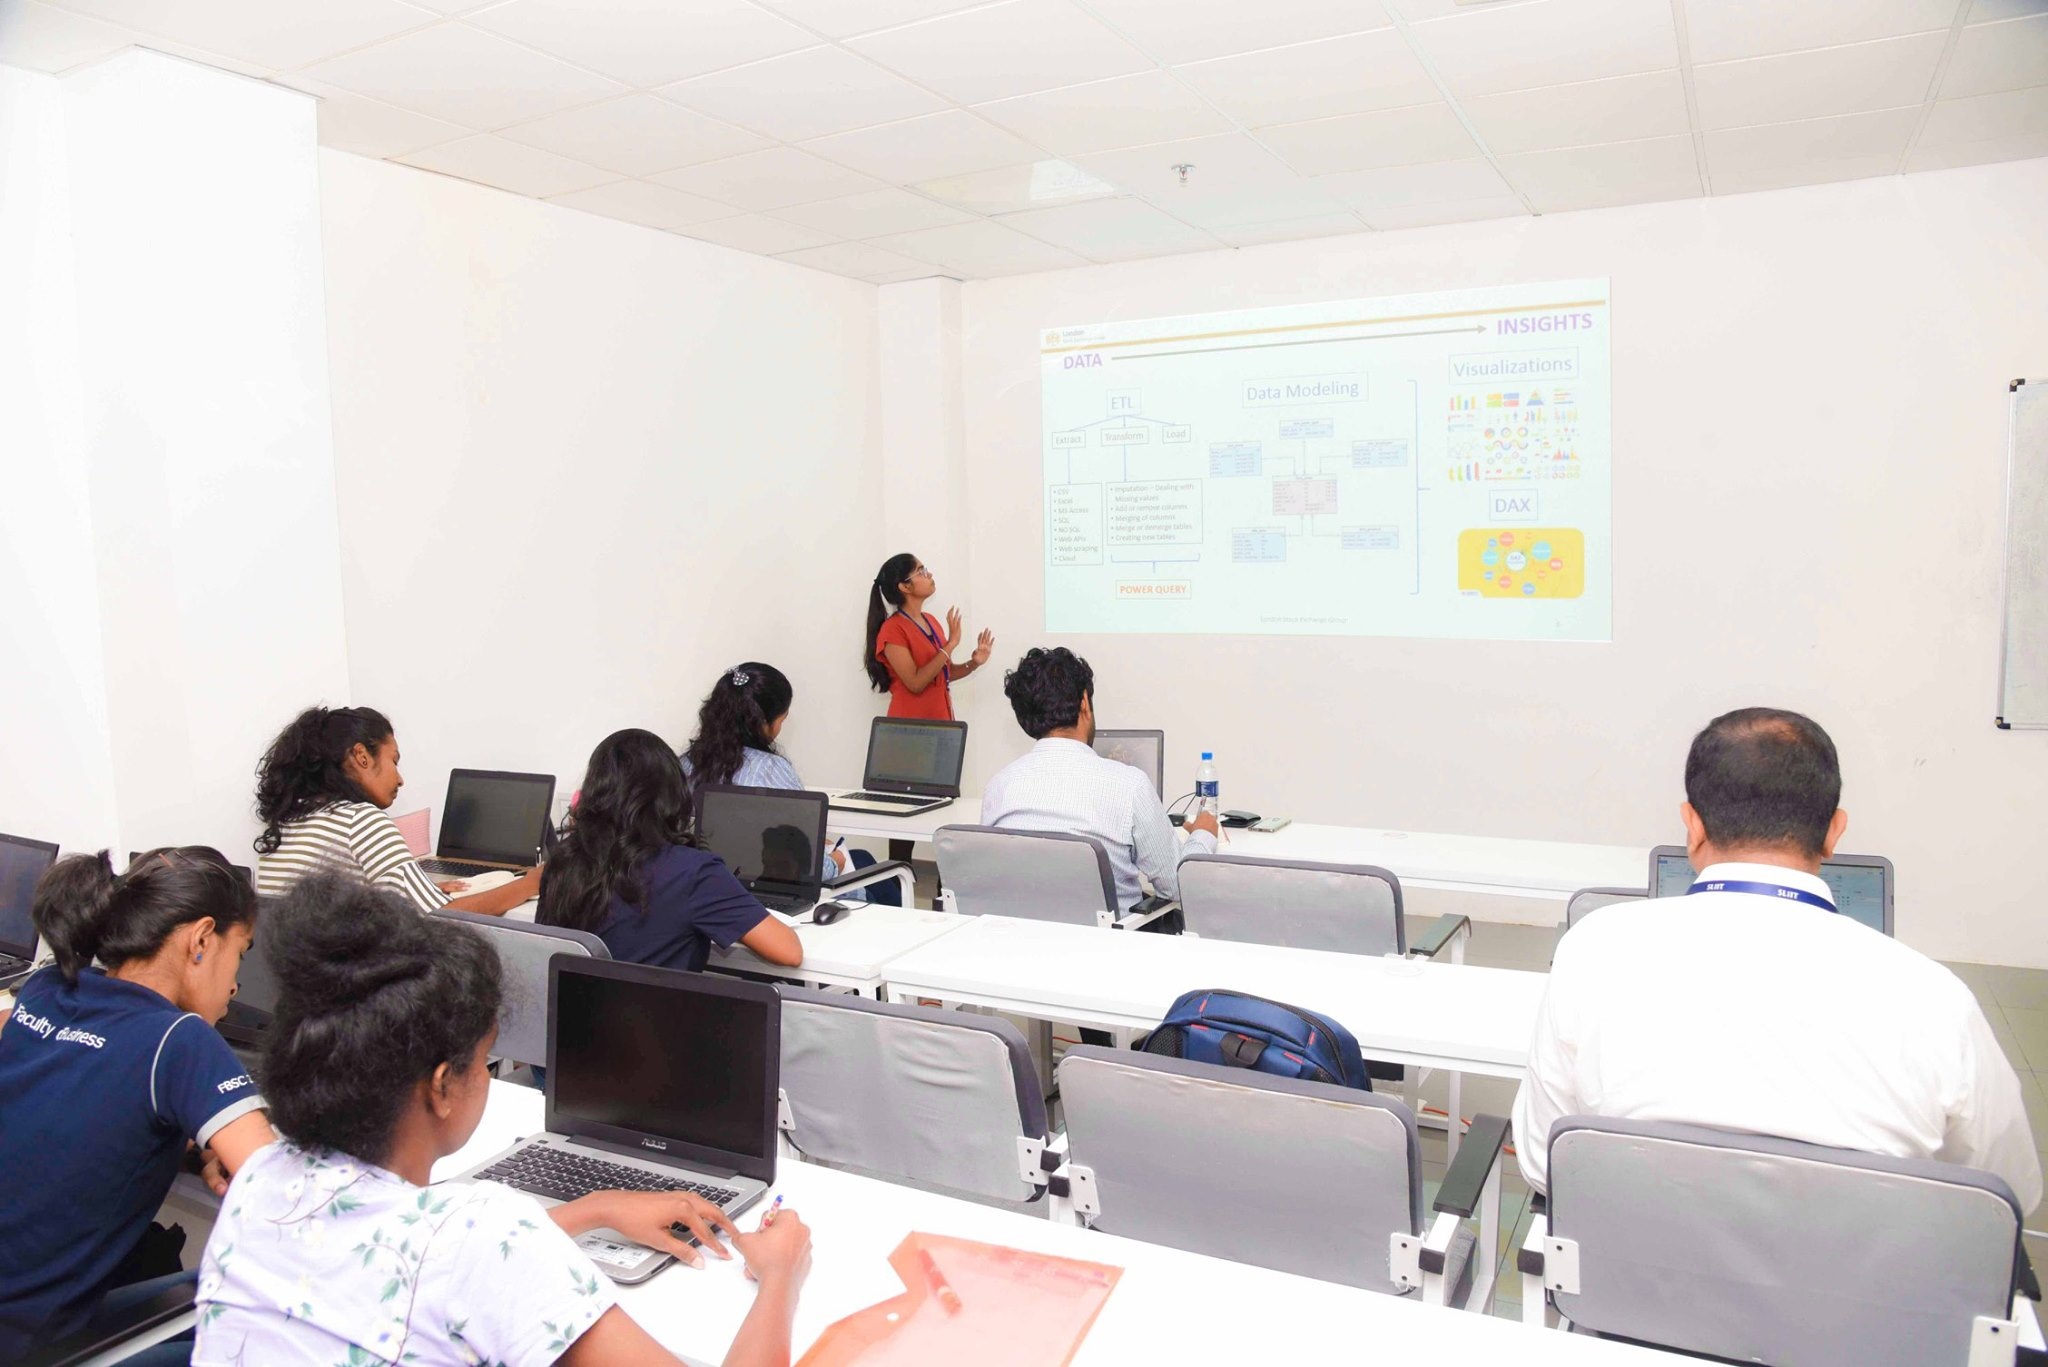 A-workshop-on-Power-BI-was-conducted-by-LSEG-Technology-Business-Services-(Pvt)-Ltd-